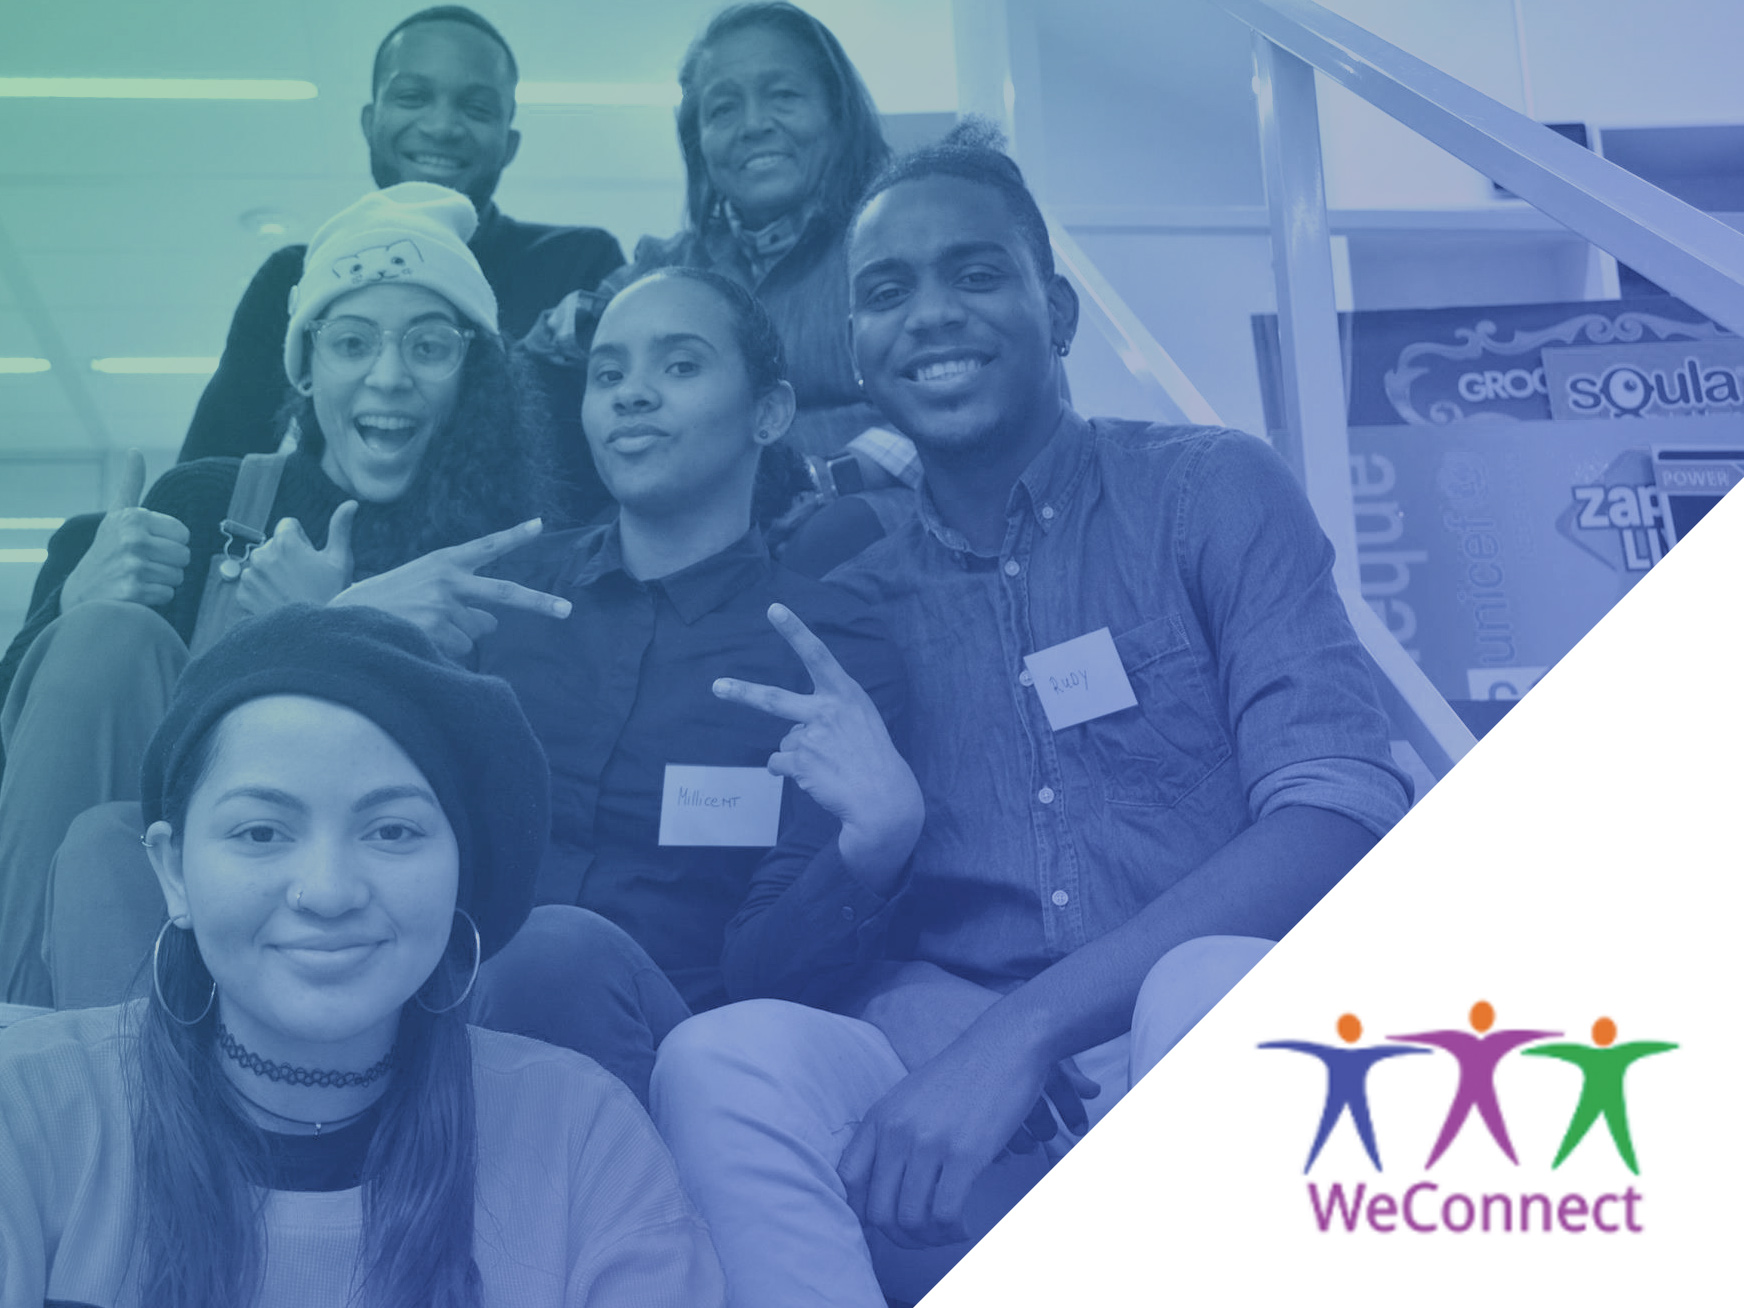 WeConnect in the Spotlight